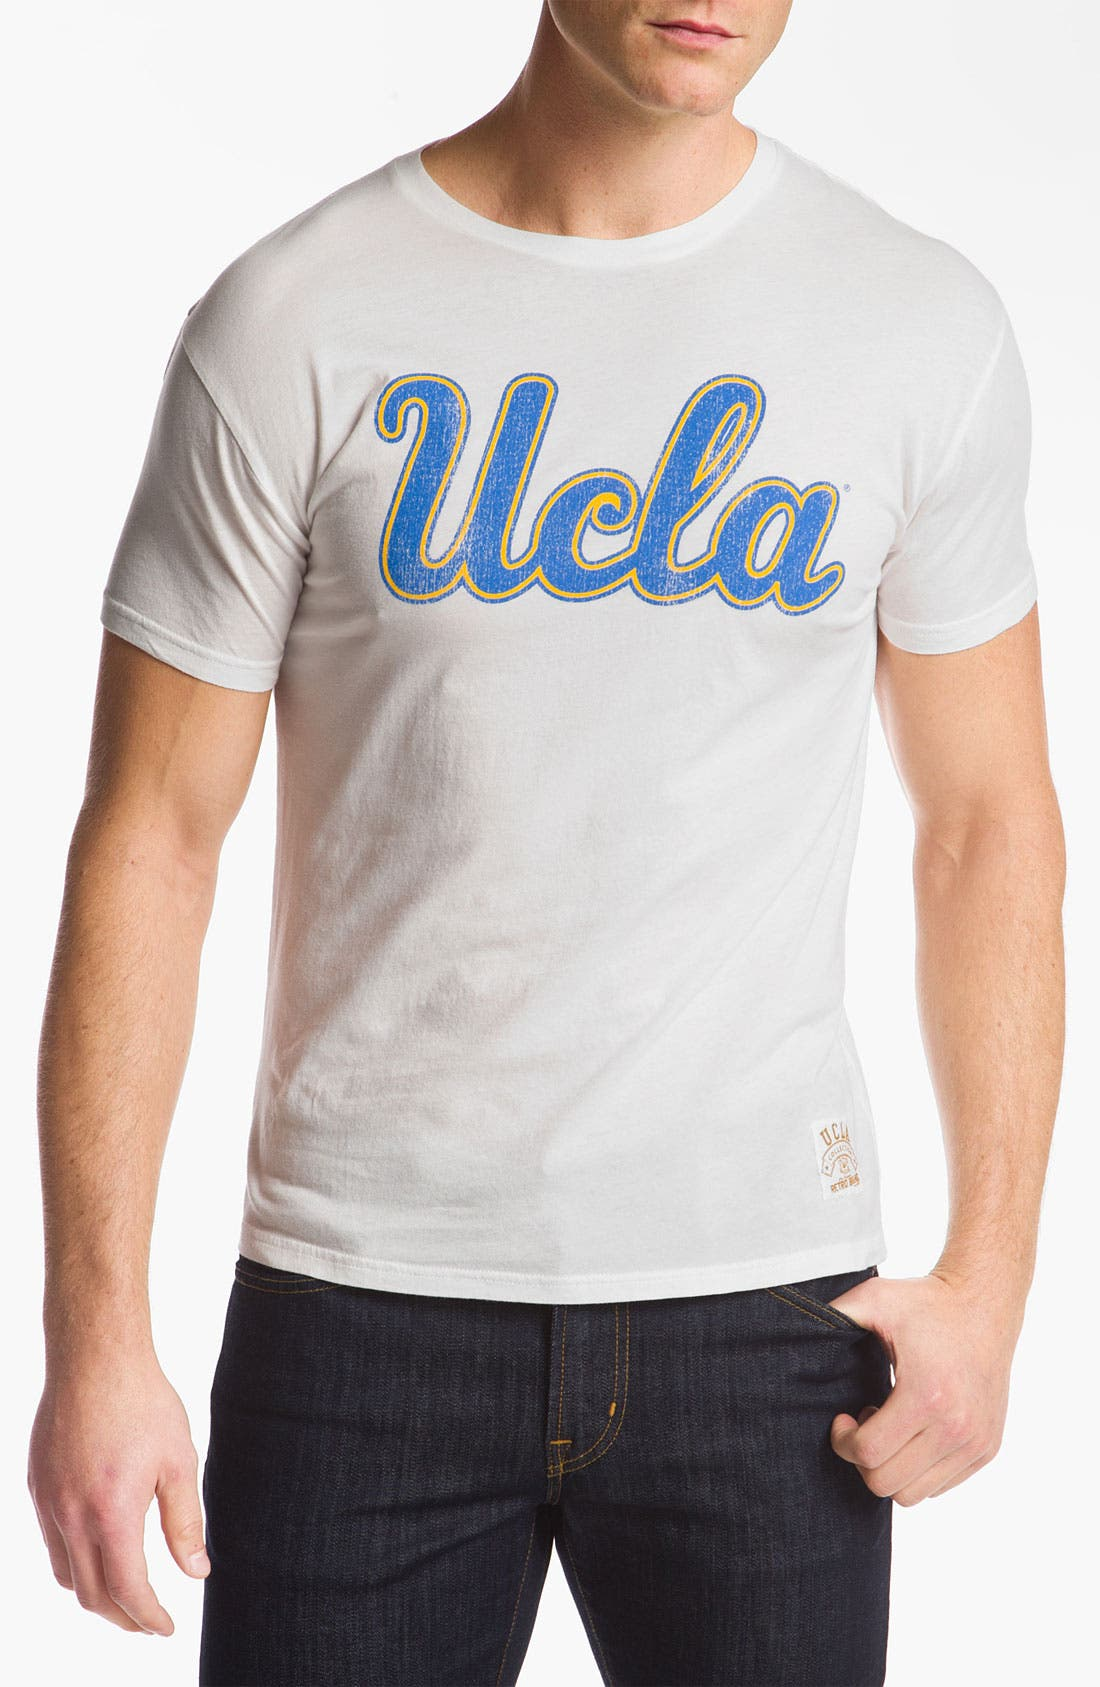 Alternate Image 1 Selected - The Original Retro Brand 'UCLA' T-Shirt